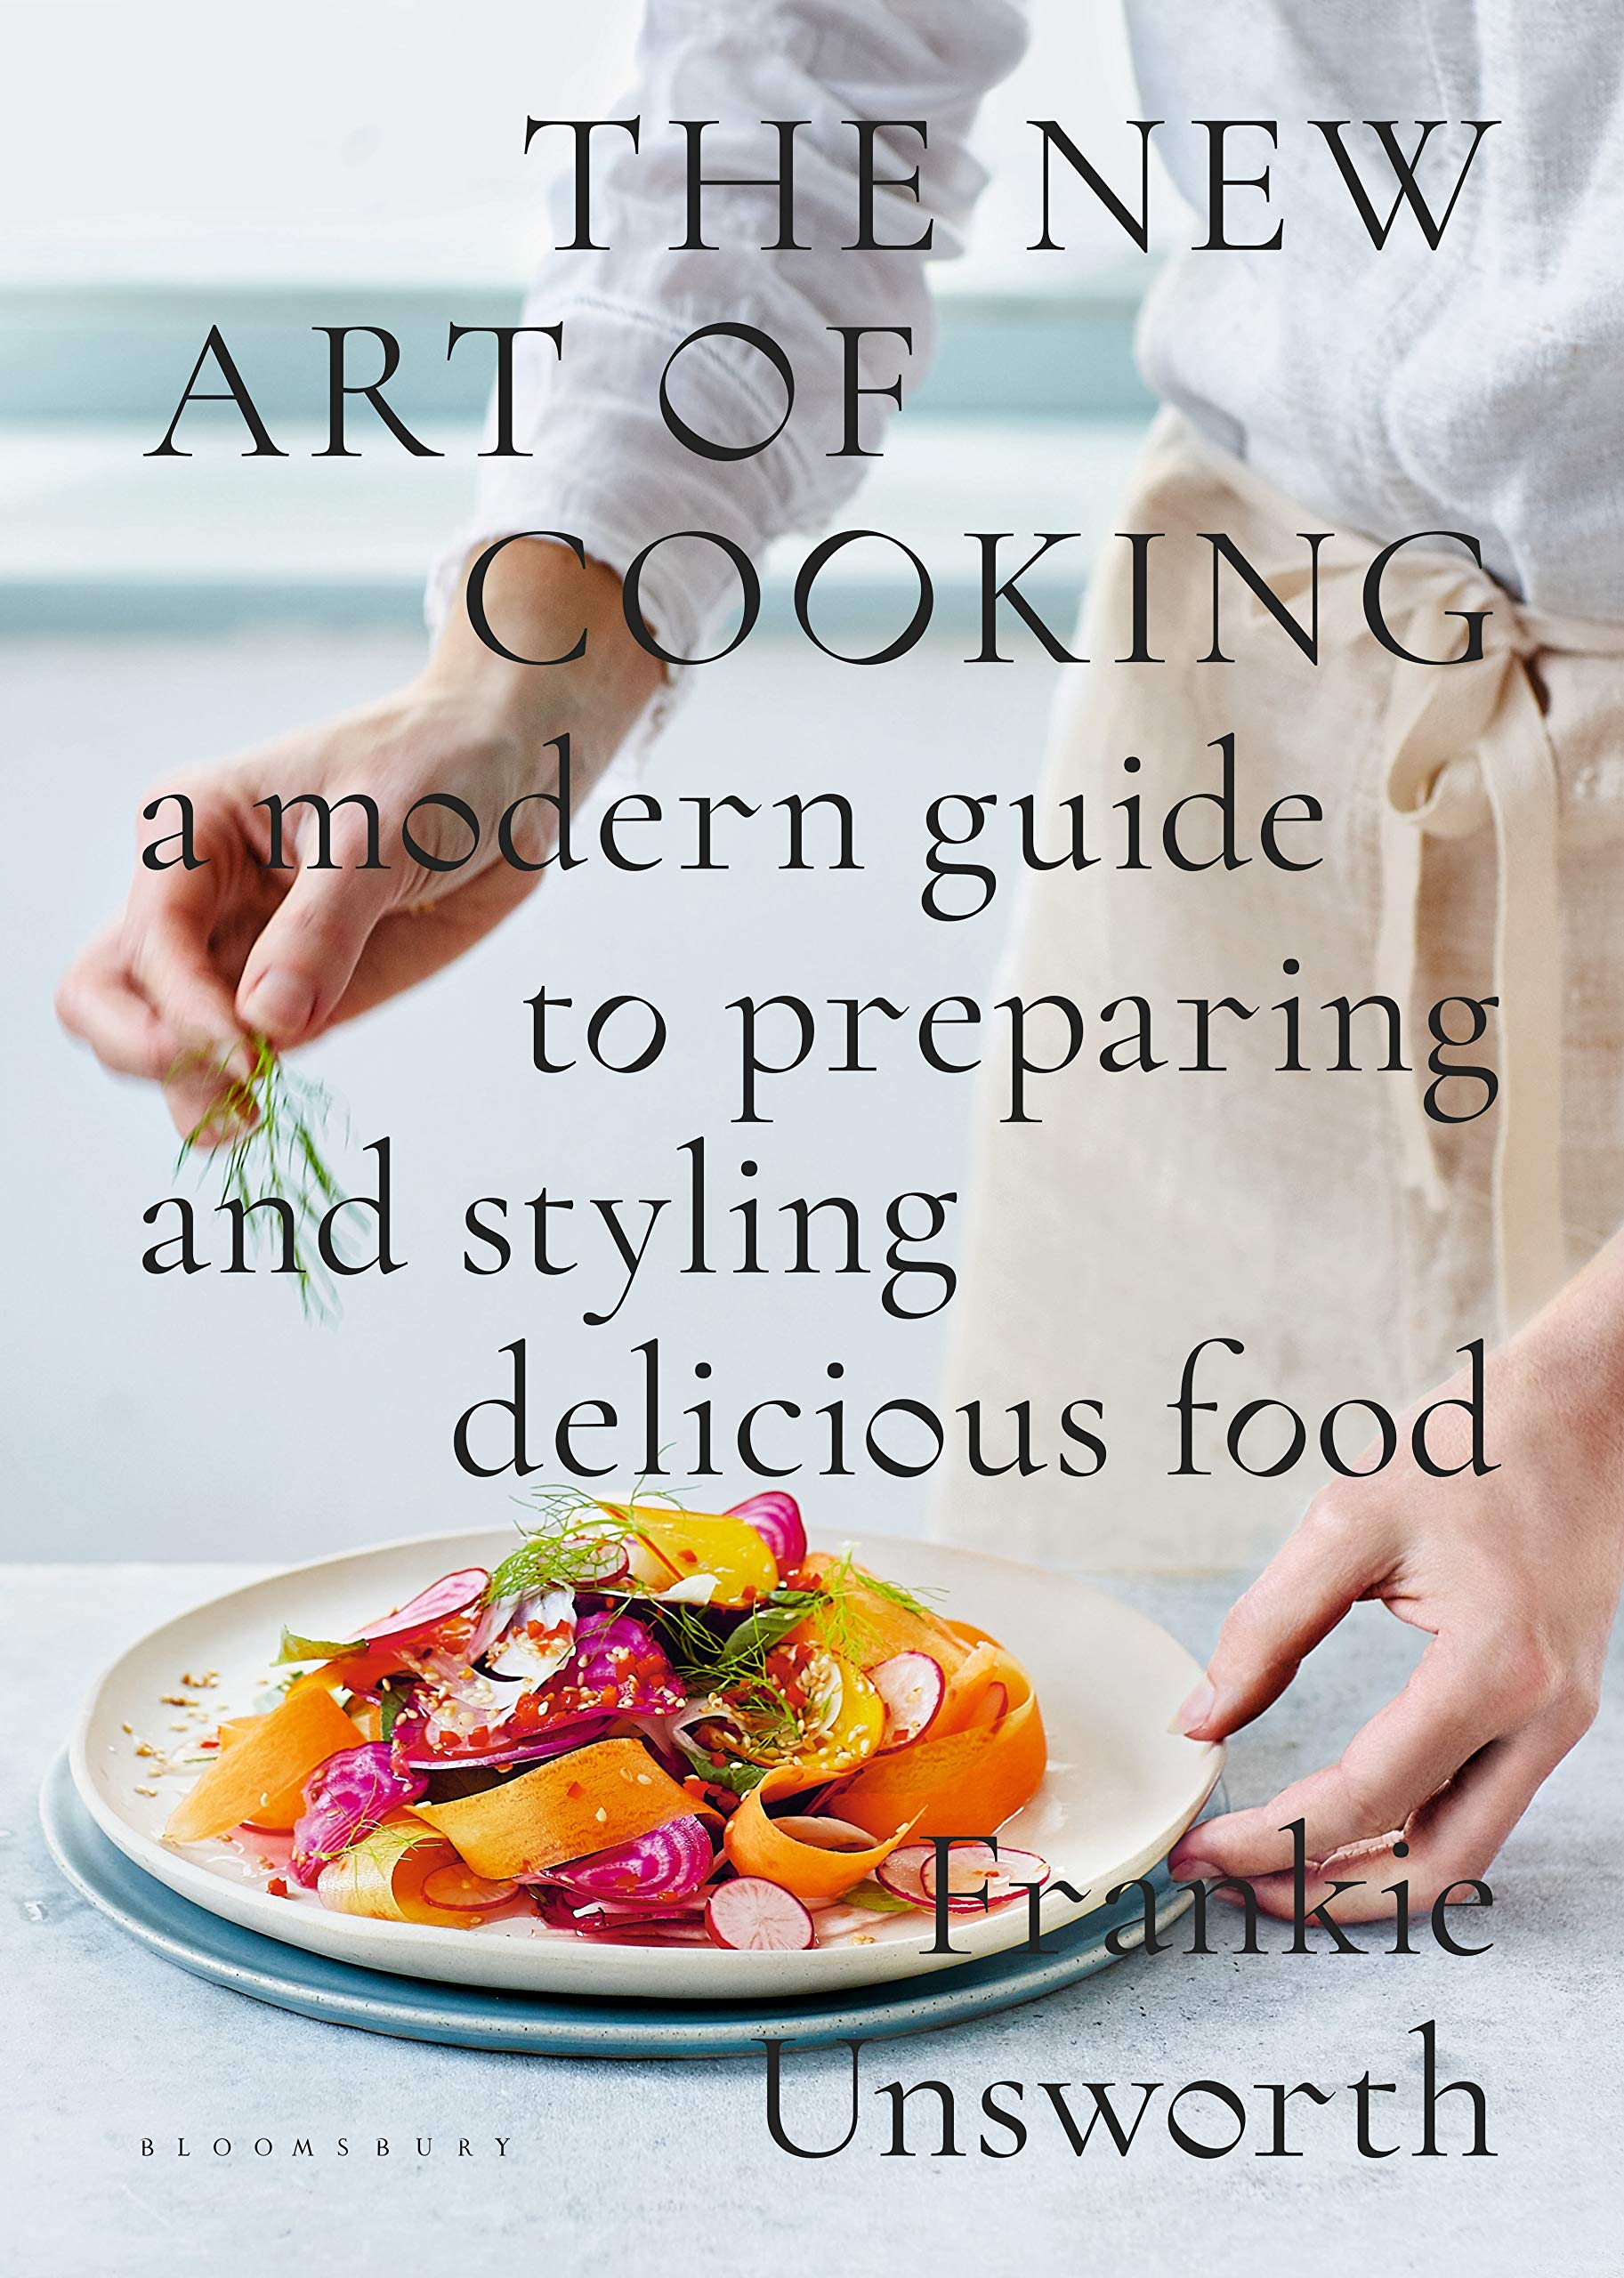 Book - The New Art Of Cooking: A Modern Guide To Preparing and Styling Delicious Food